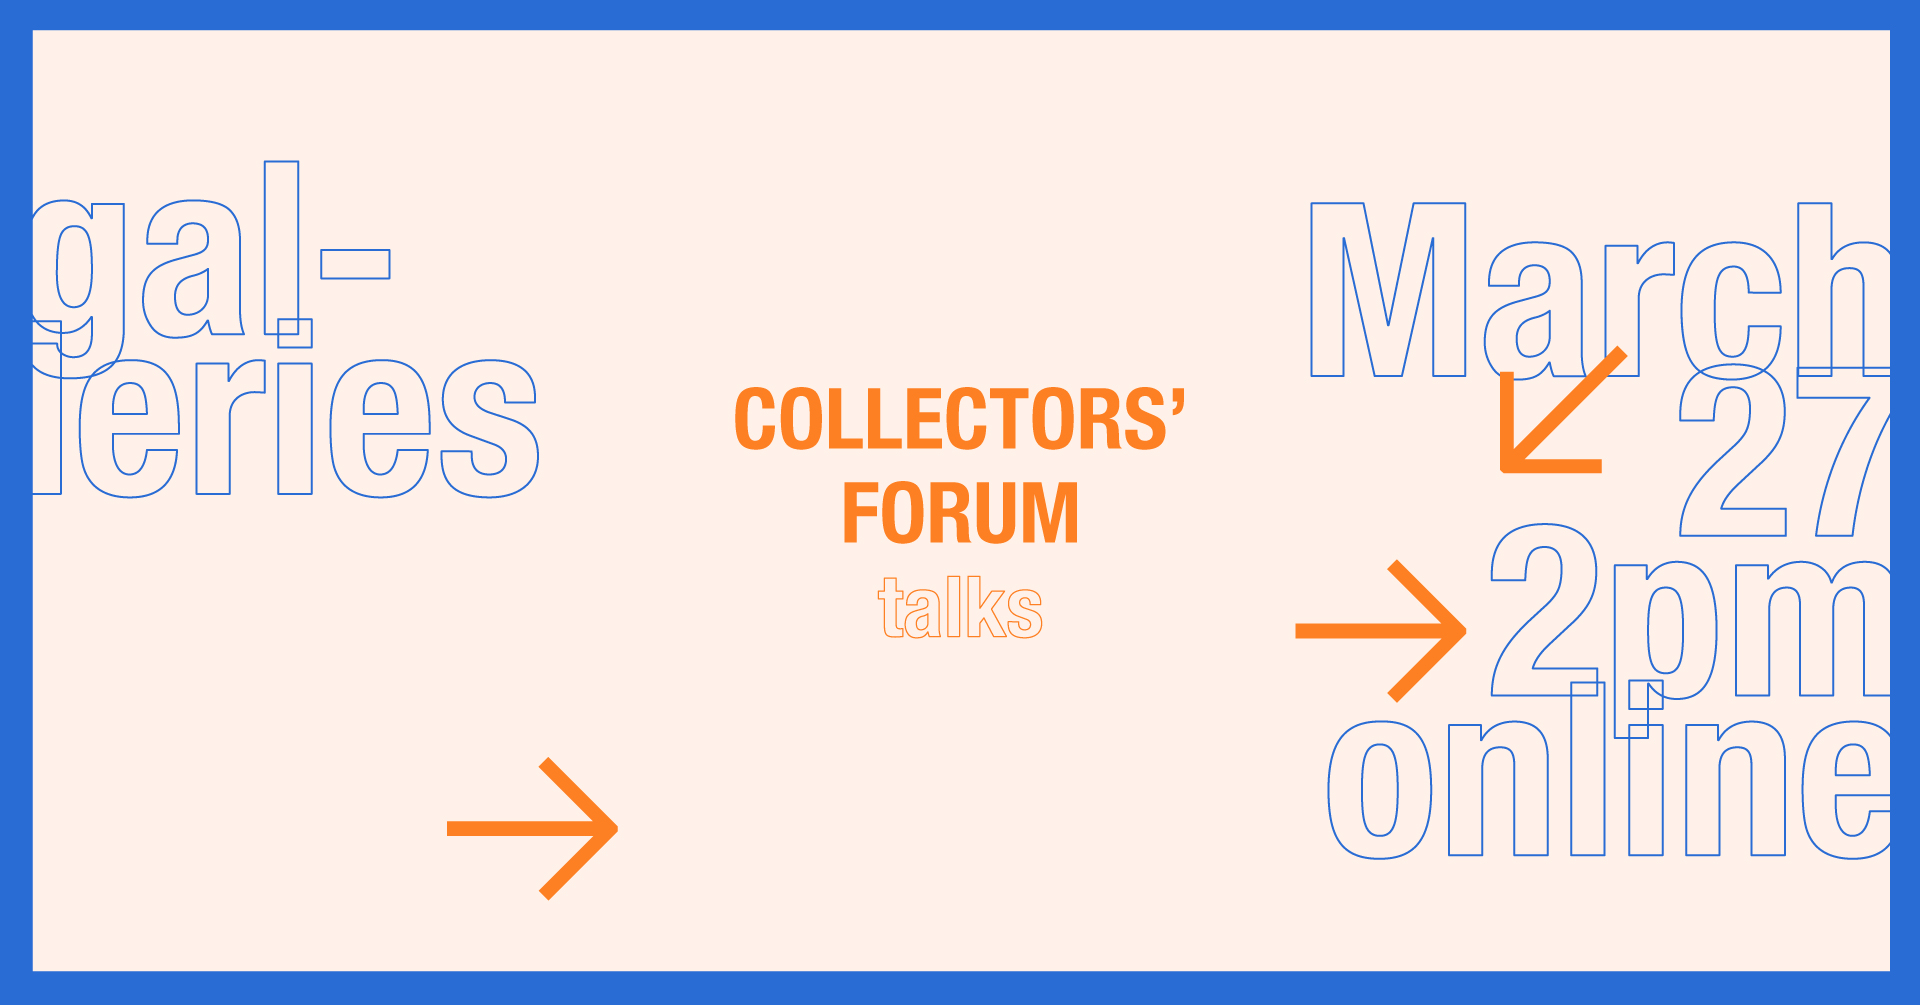 The Open Arts Foundation presents the first event of the Spring Collectors Forum 2021